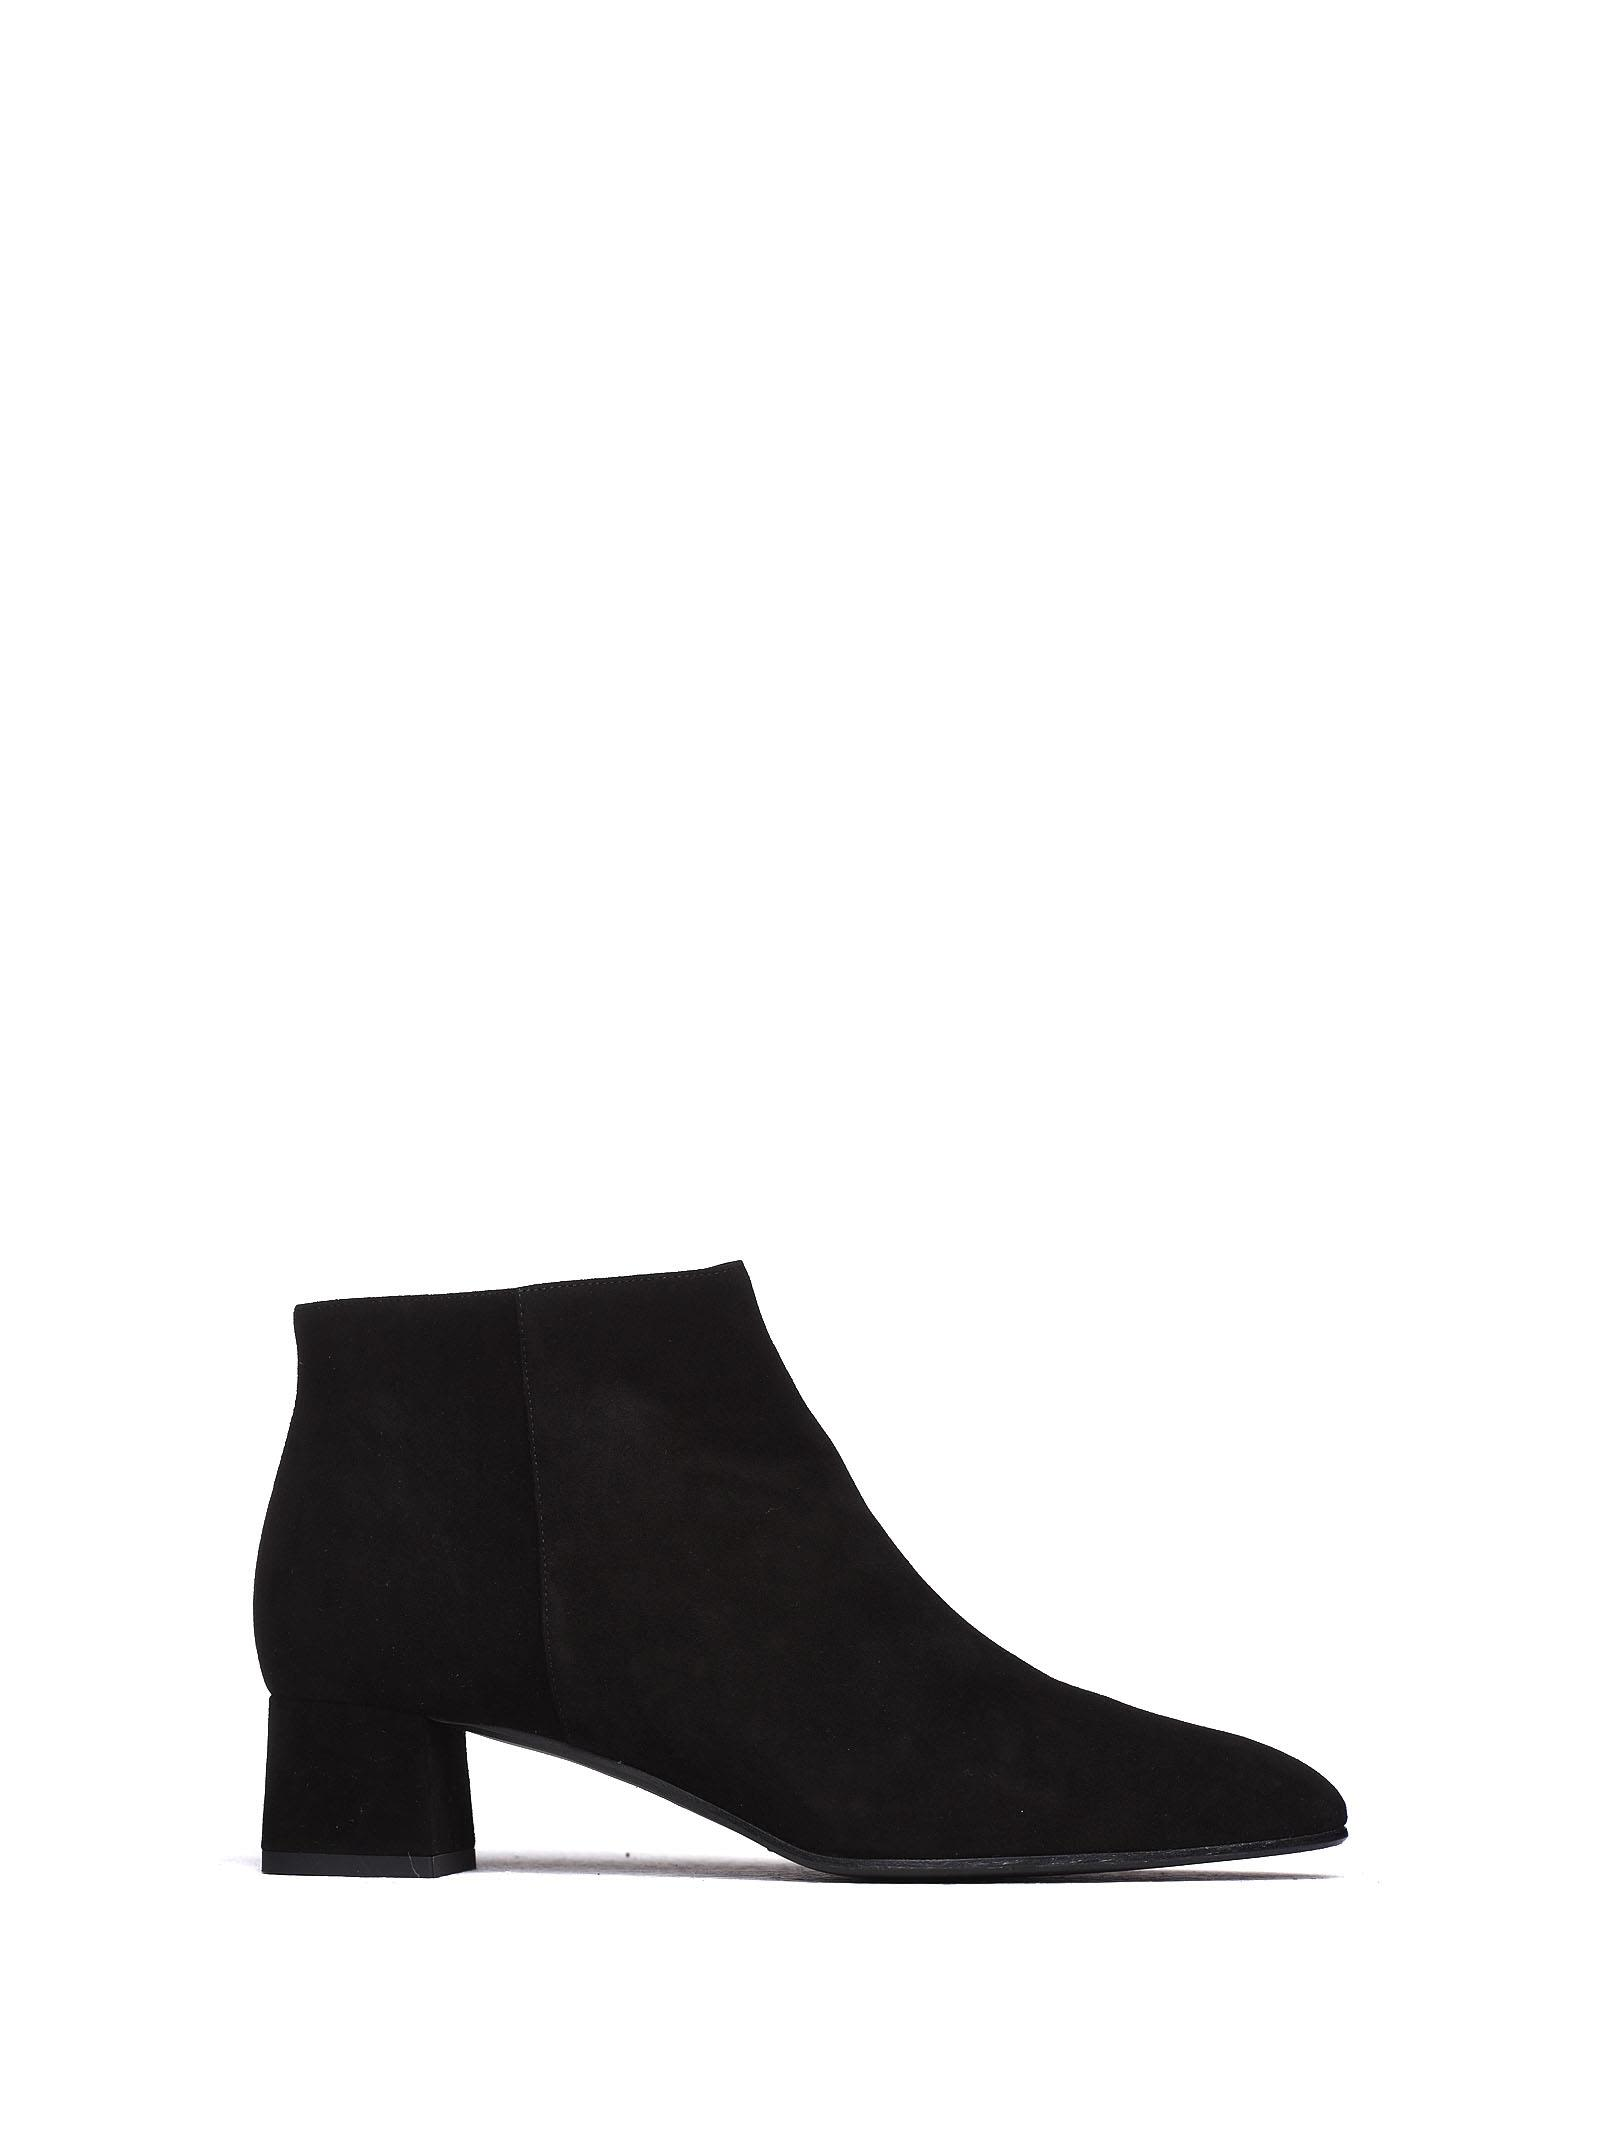 FRATELLI ROSSETTI Ankle Boots In Black Suede in Nero